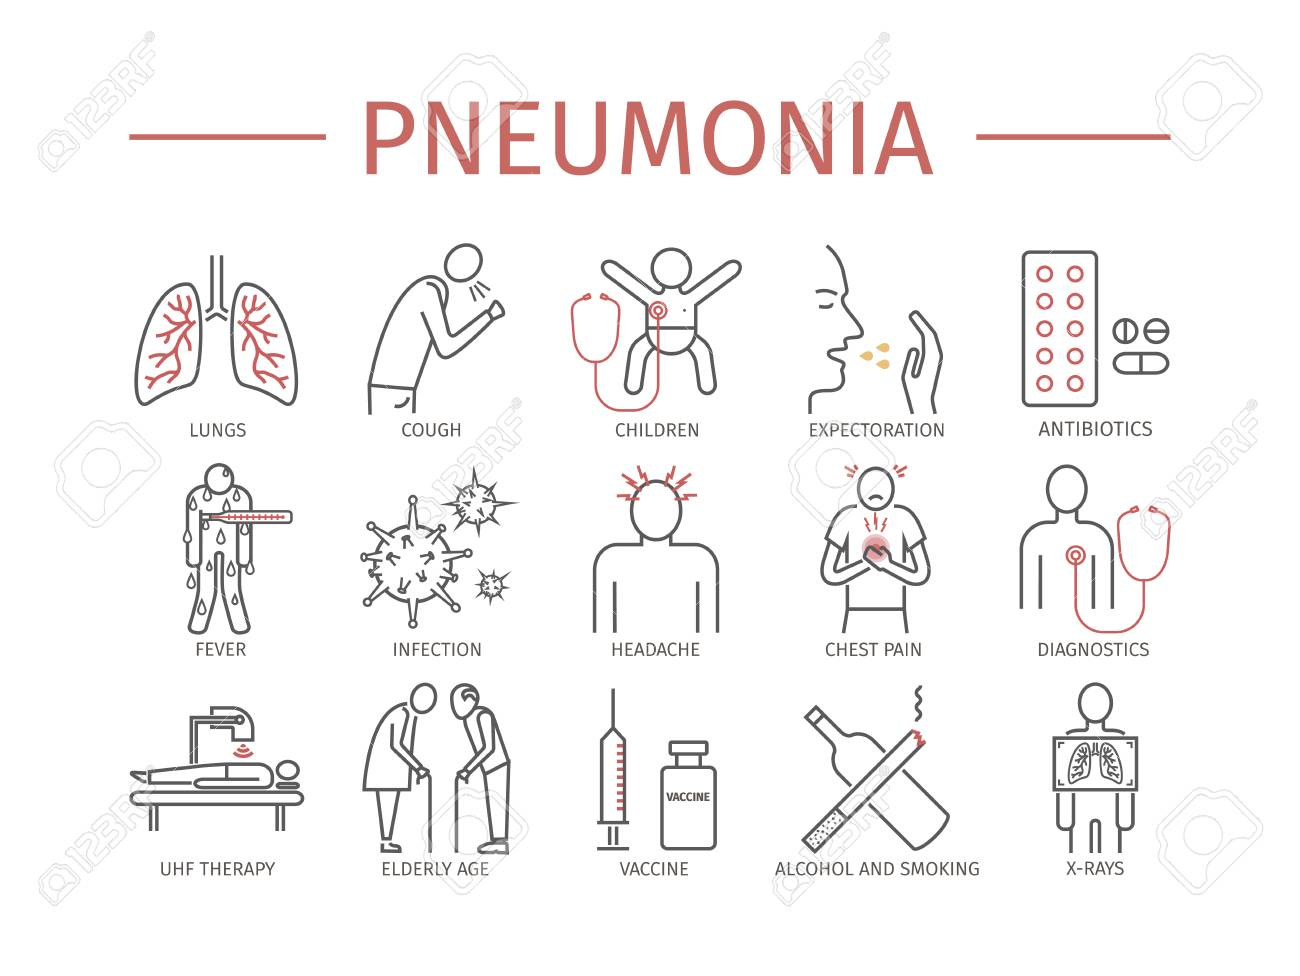 Pneumonia Symptoms and Causes recommendations